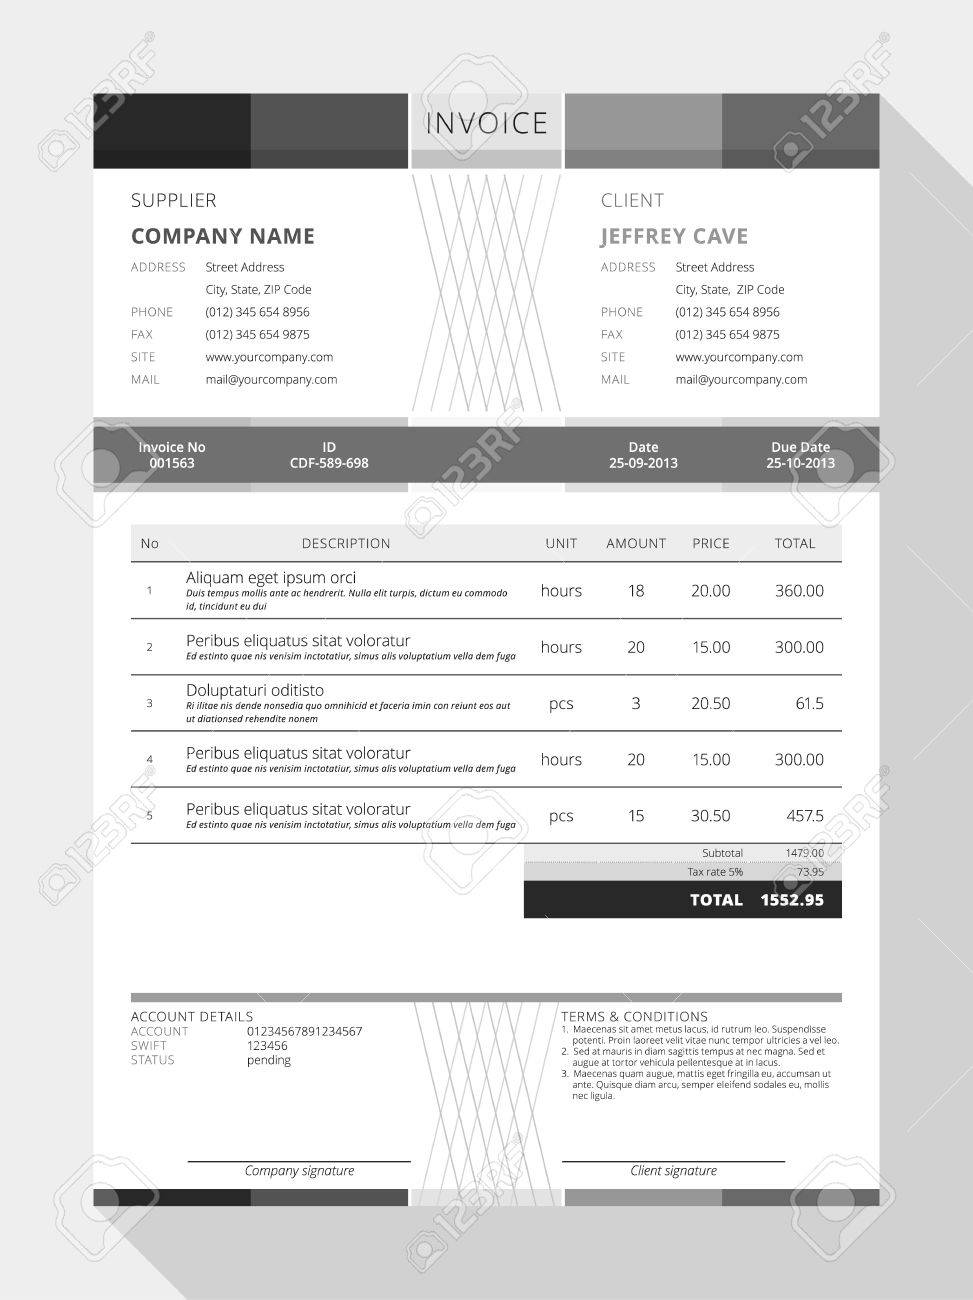 Modaoxus  Surprising Design An Invoice  Professional Graphic Design Invoice  With Excellent Vector Customizable Invoice Form Template Design Vector   Design An Invoice With Nice Easy Invoice Software Free Also Proforma Invoic In Addition Invoice Payment Process And Proforma Invoice Sample Excel As Well As Invoice Templates Doc Additionally Template For Invoicing From Happytomco With Modaoxus  Excellent Design An Invoice  Professional Graphic Design Invoice  With Nice Vector Customizable Invoice Form Template Design Vector   Design An Invoice And Surprising Easy Invoice Software Free Also Proforma Invoic In Addition Invoice Payment Process From Happytomco